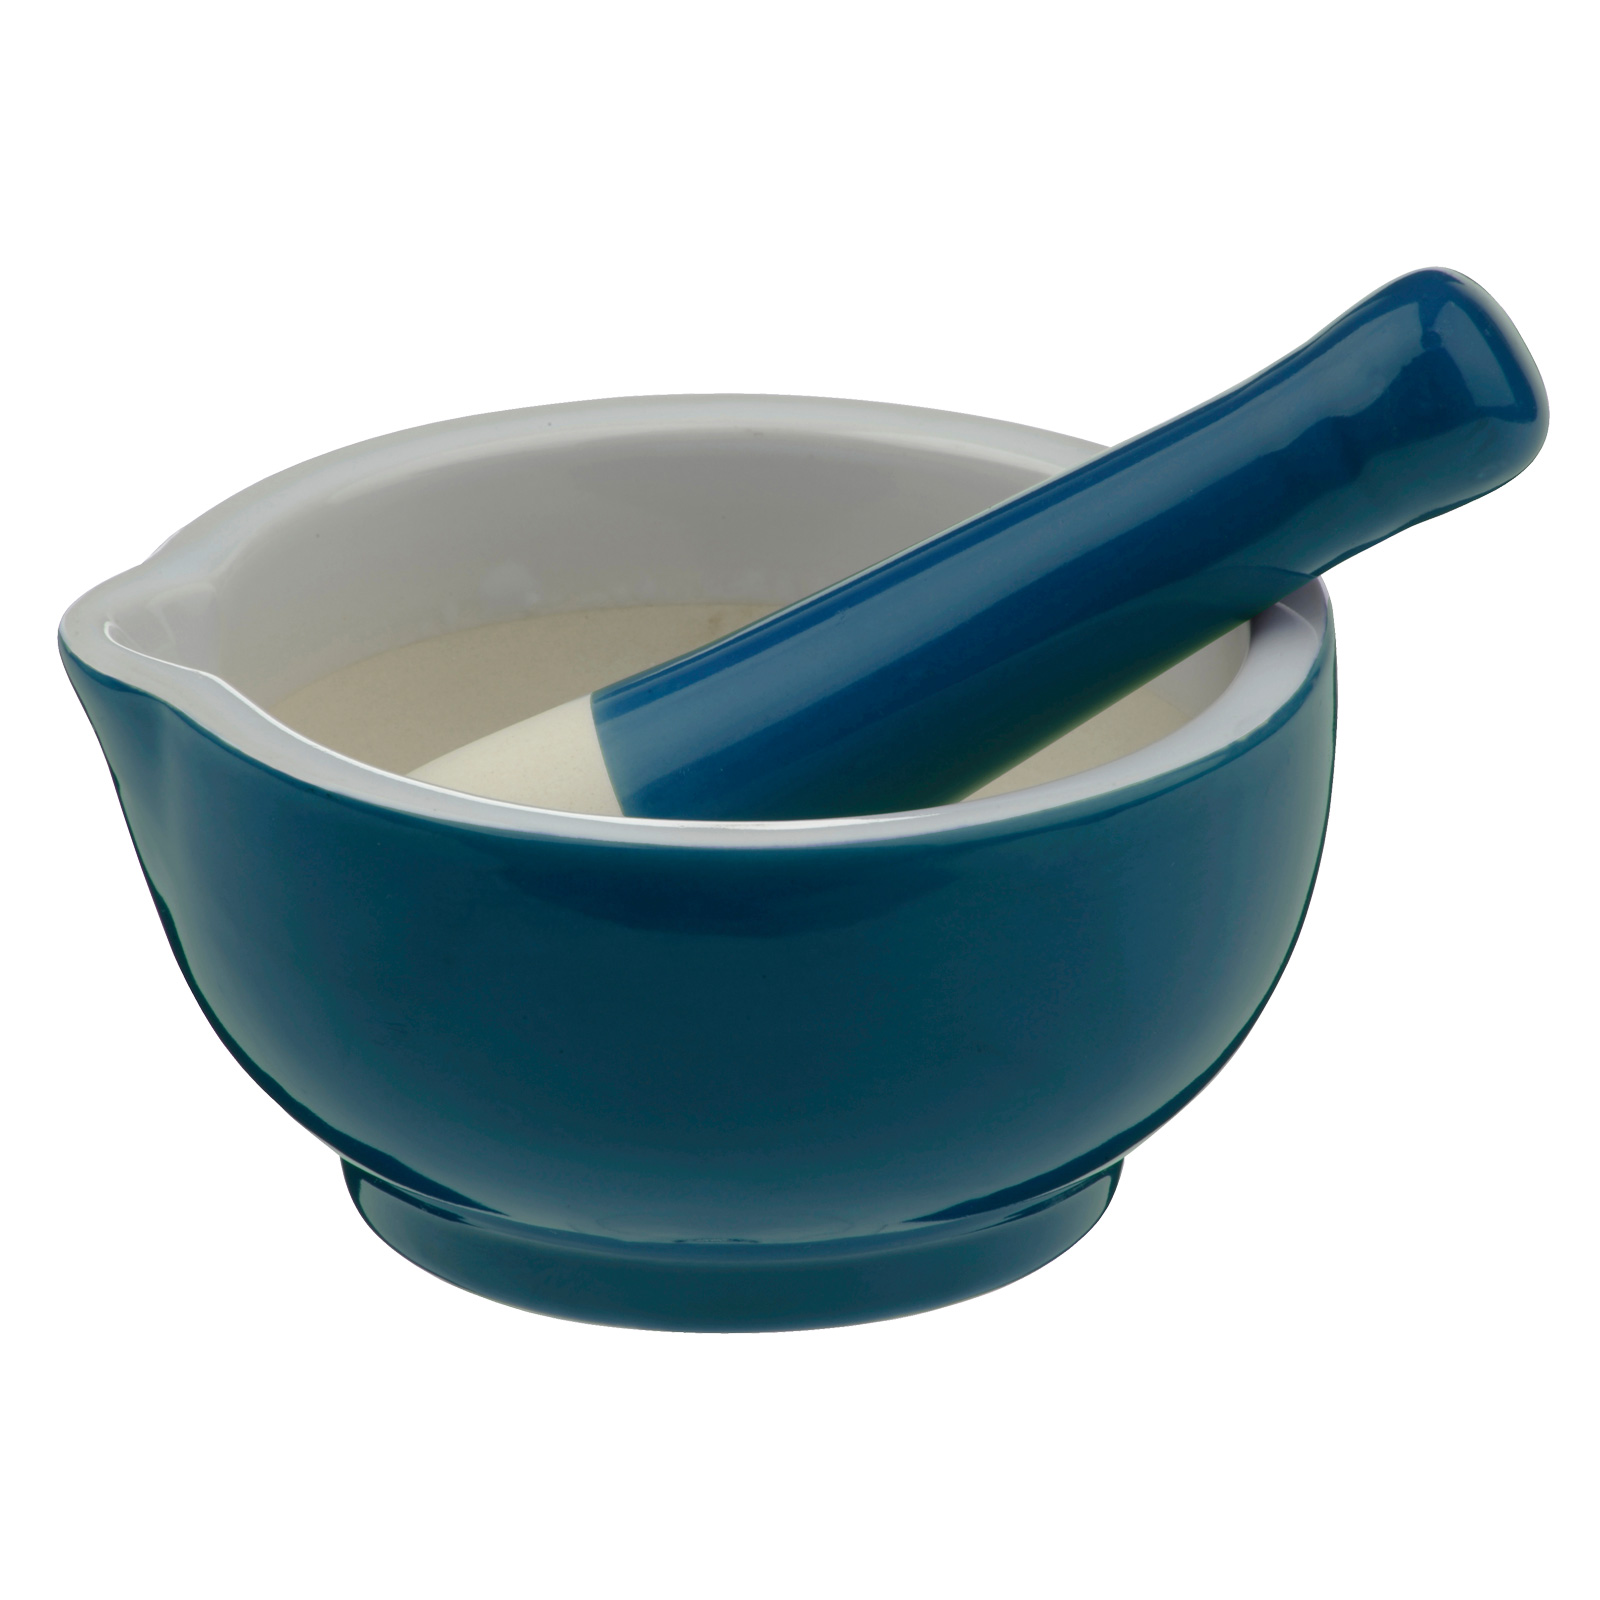 SCOOP! Mortar & Pestle Teal